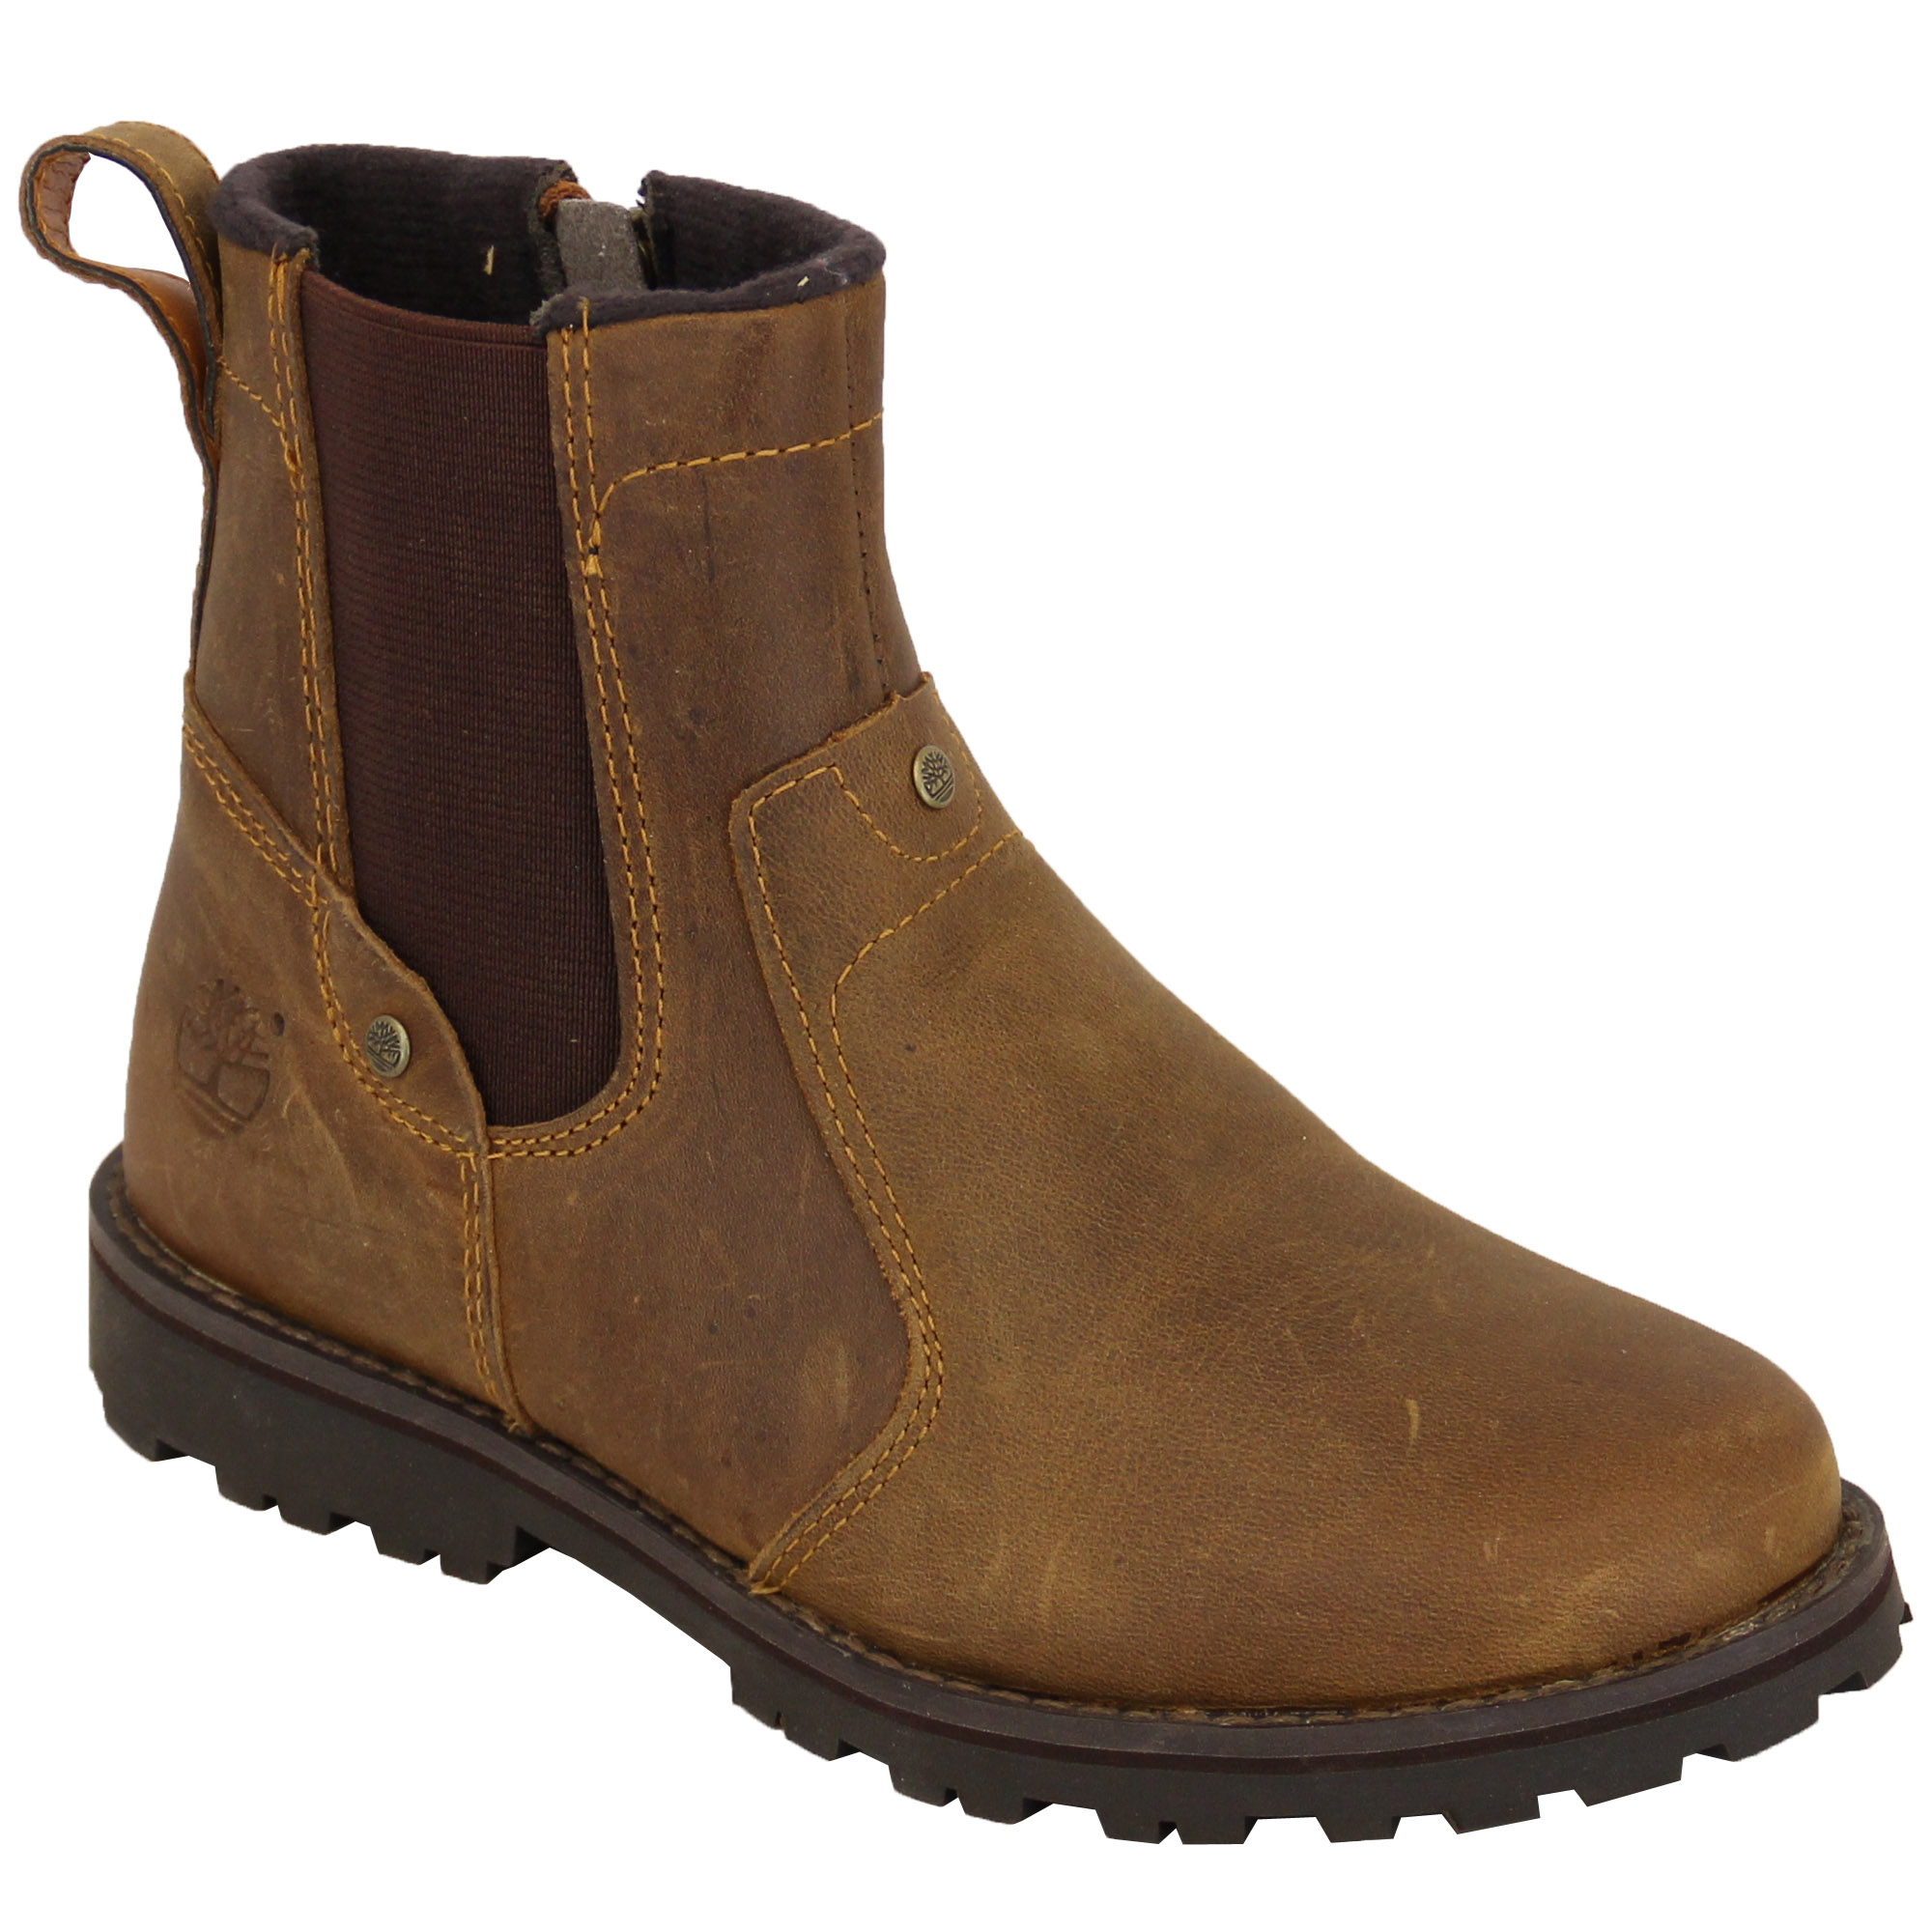 Buy low price, high quality boy's ankle boots with worldwide shipping on shopnew-5uel8qry.cf